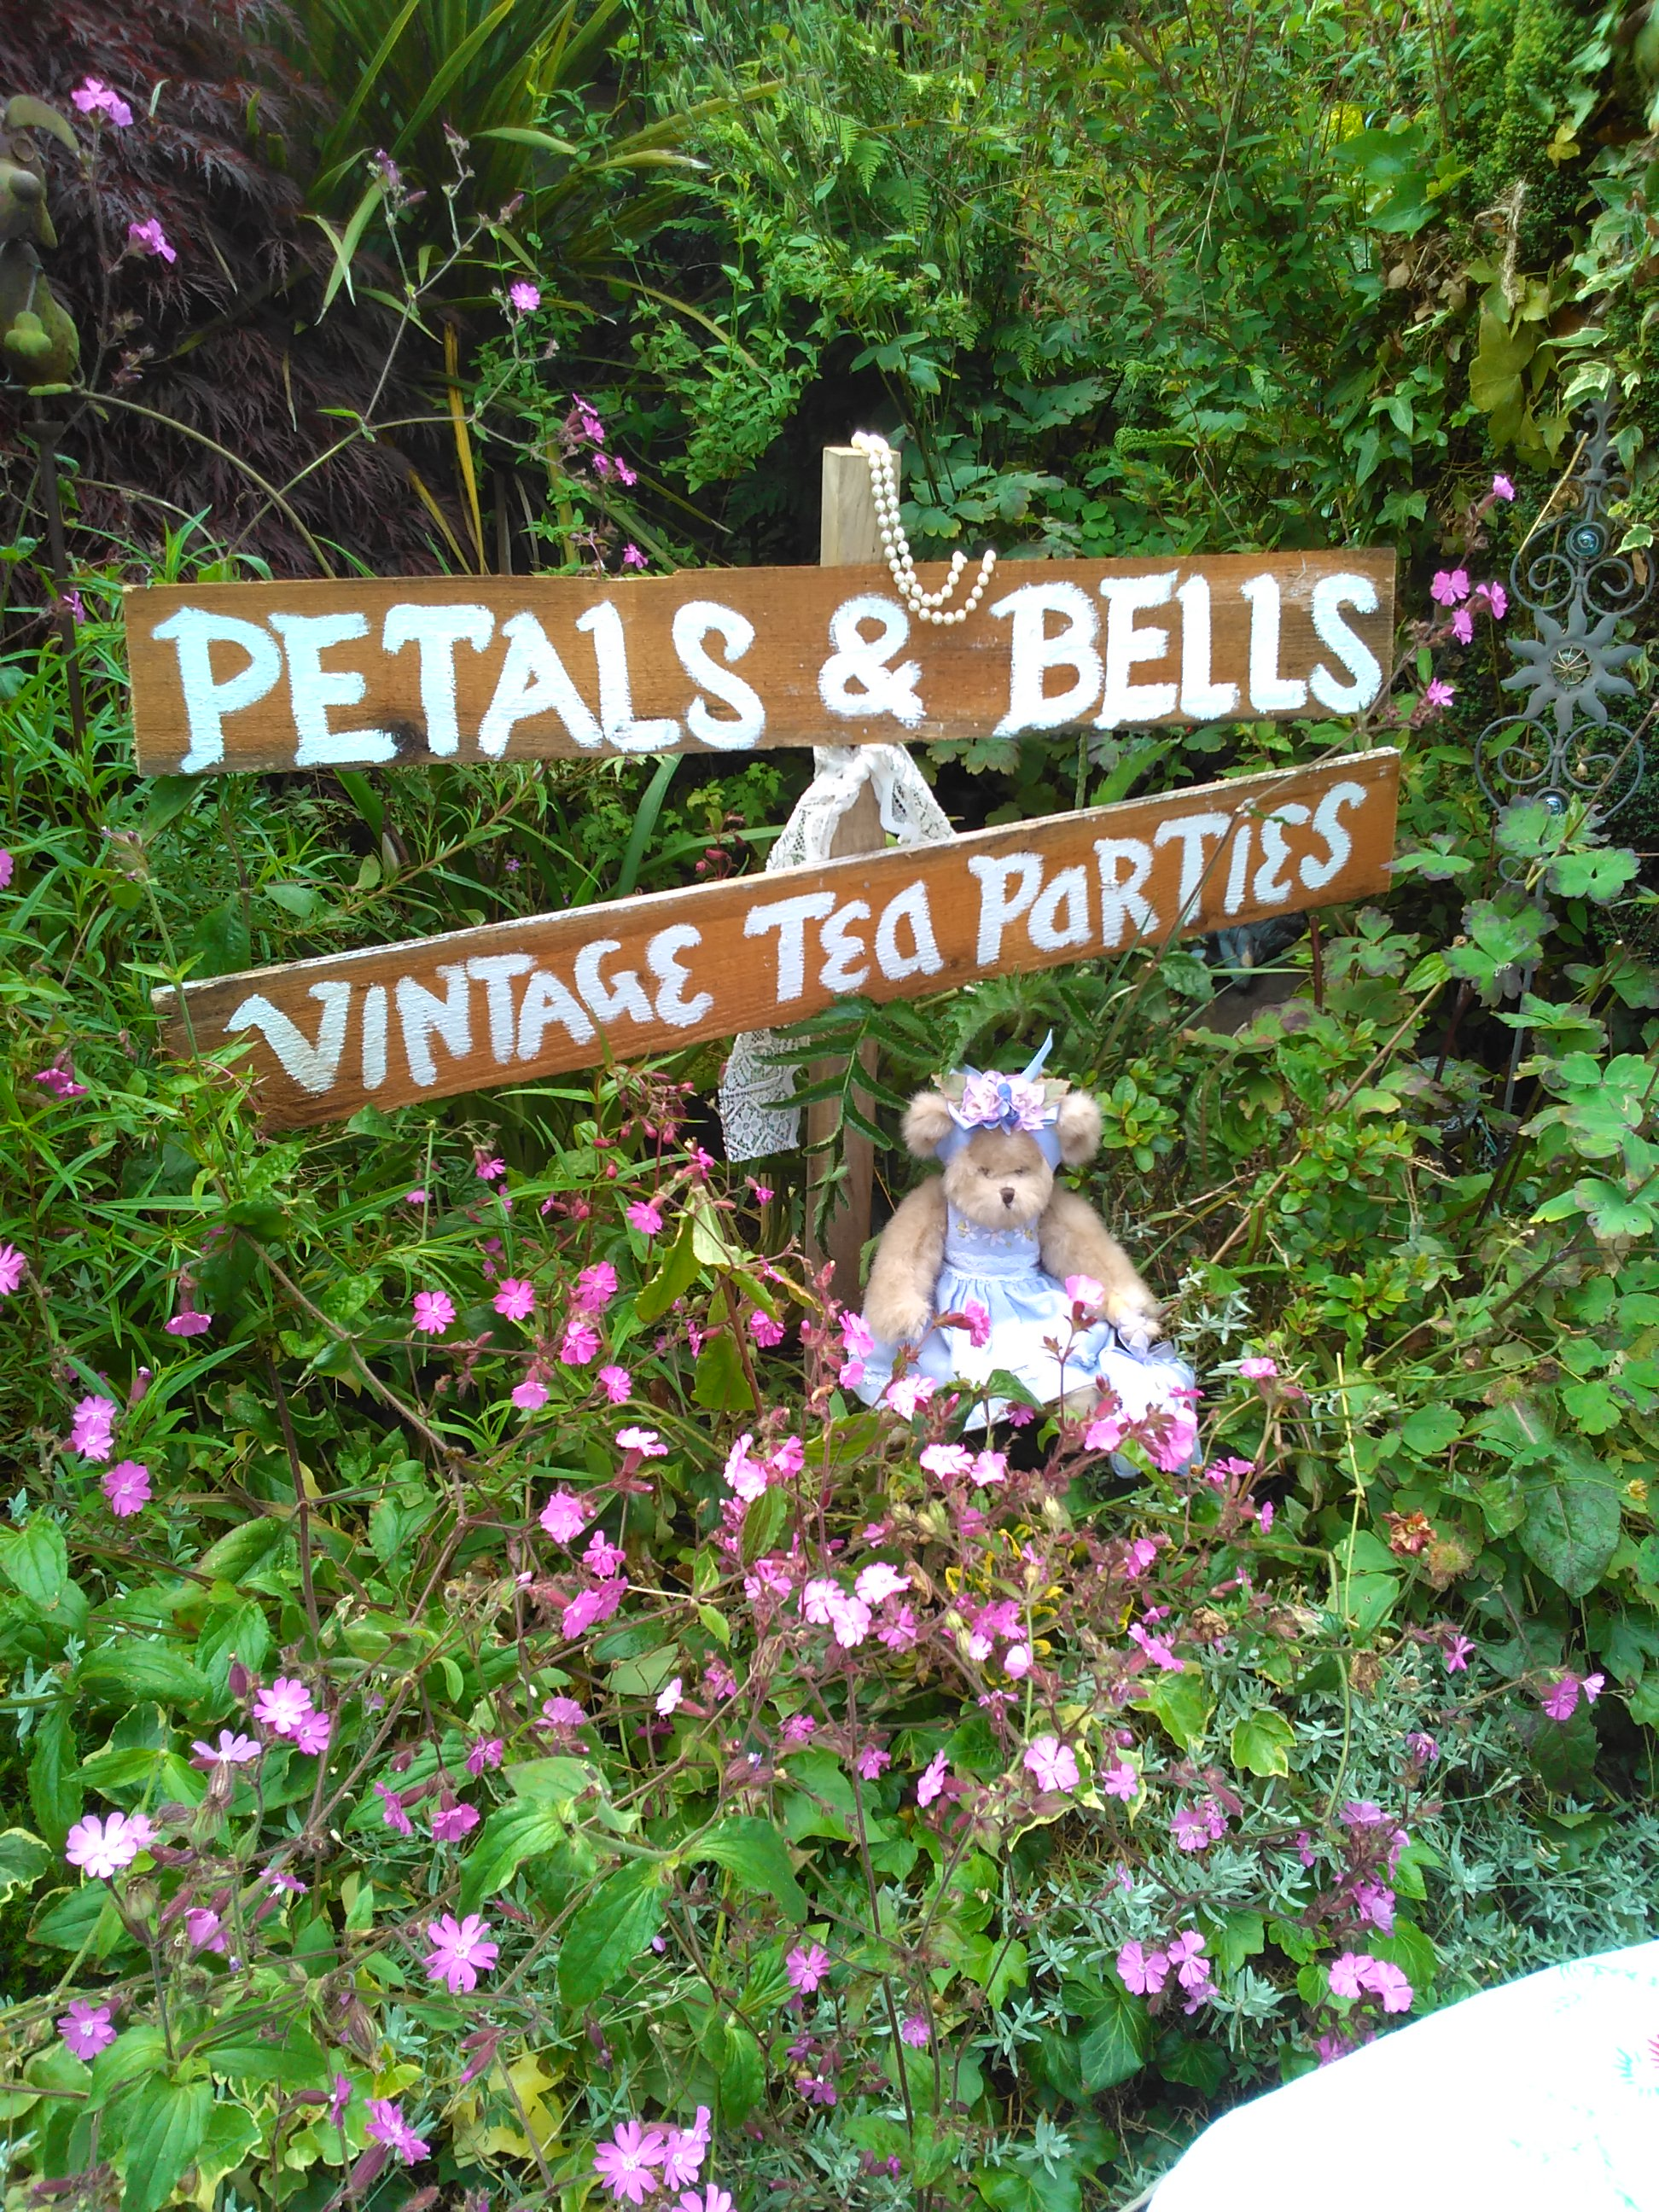 Petals and Bells Vintage Tea Parties